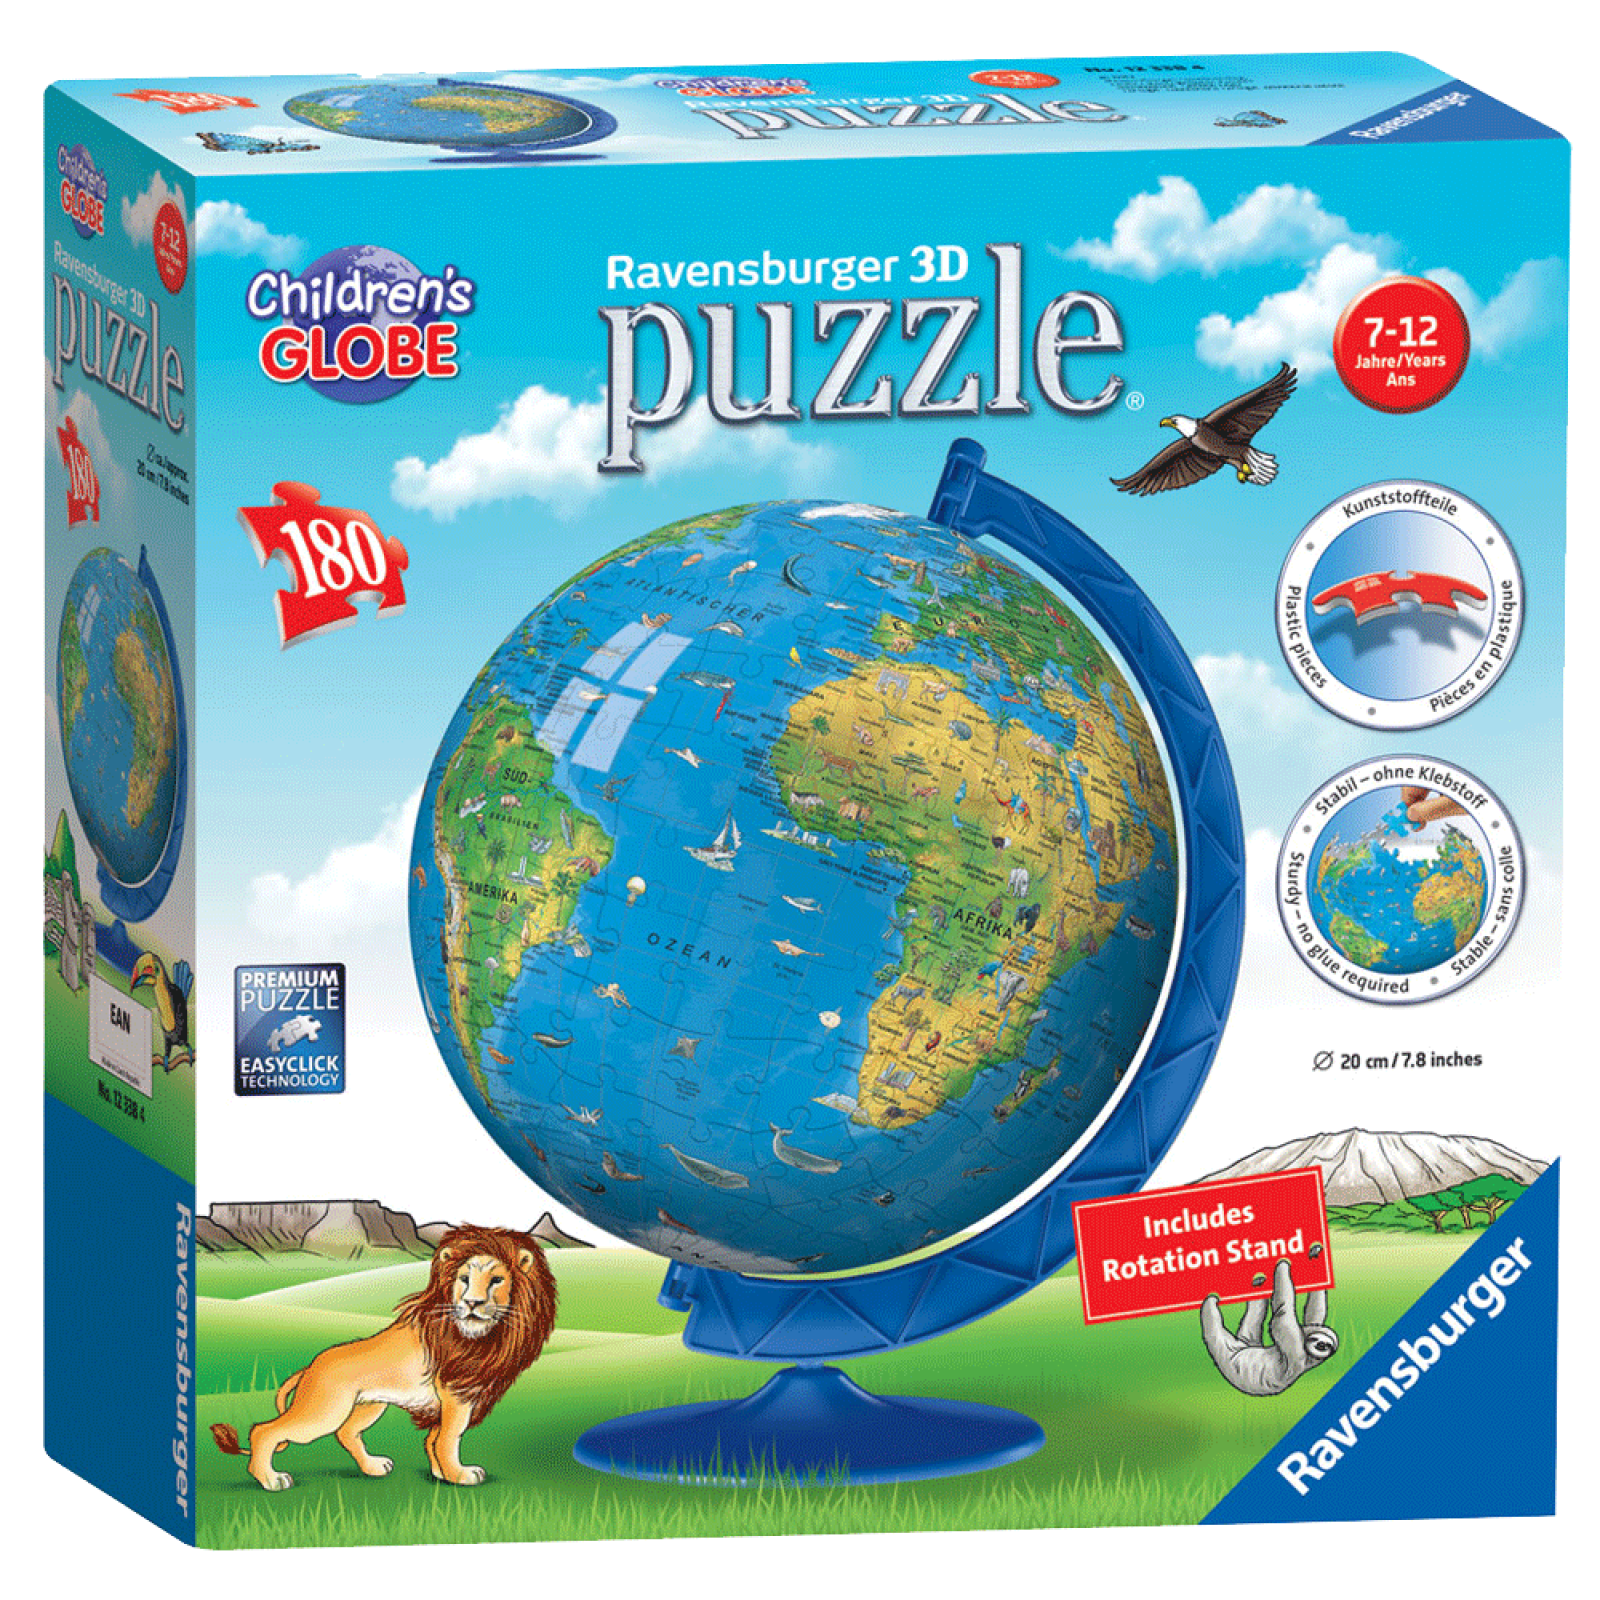 Children's 3D Globe Puzzle 180 Pieces 7-12yrs